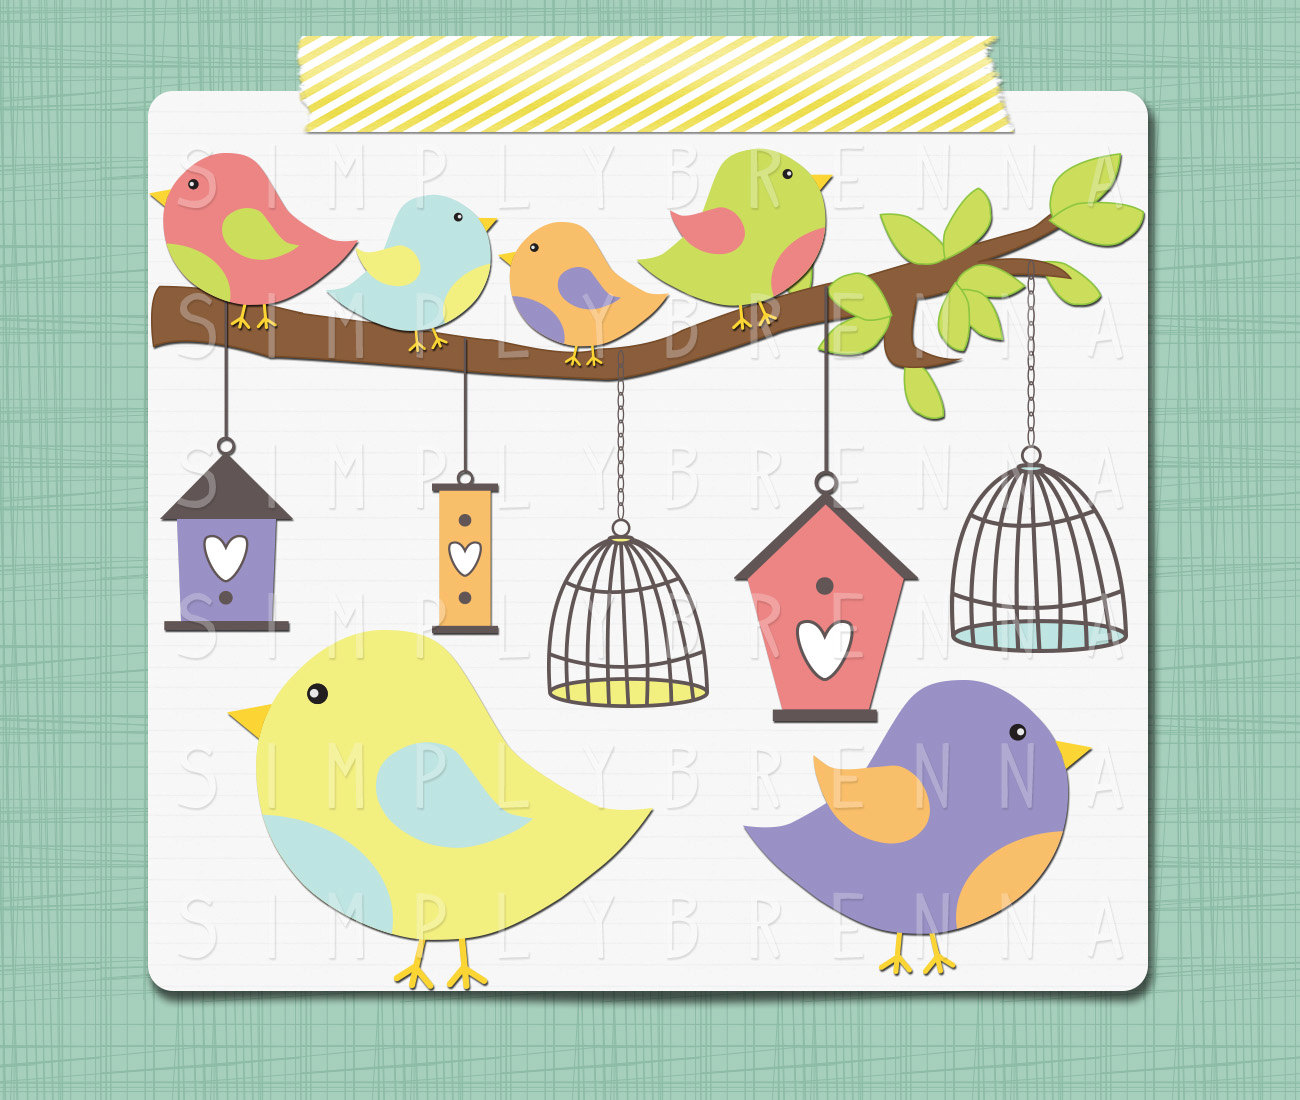 Brds clipart tree house And Bird is Images digital